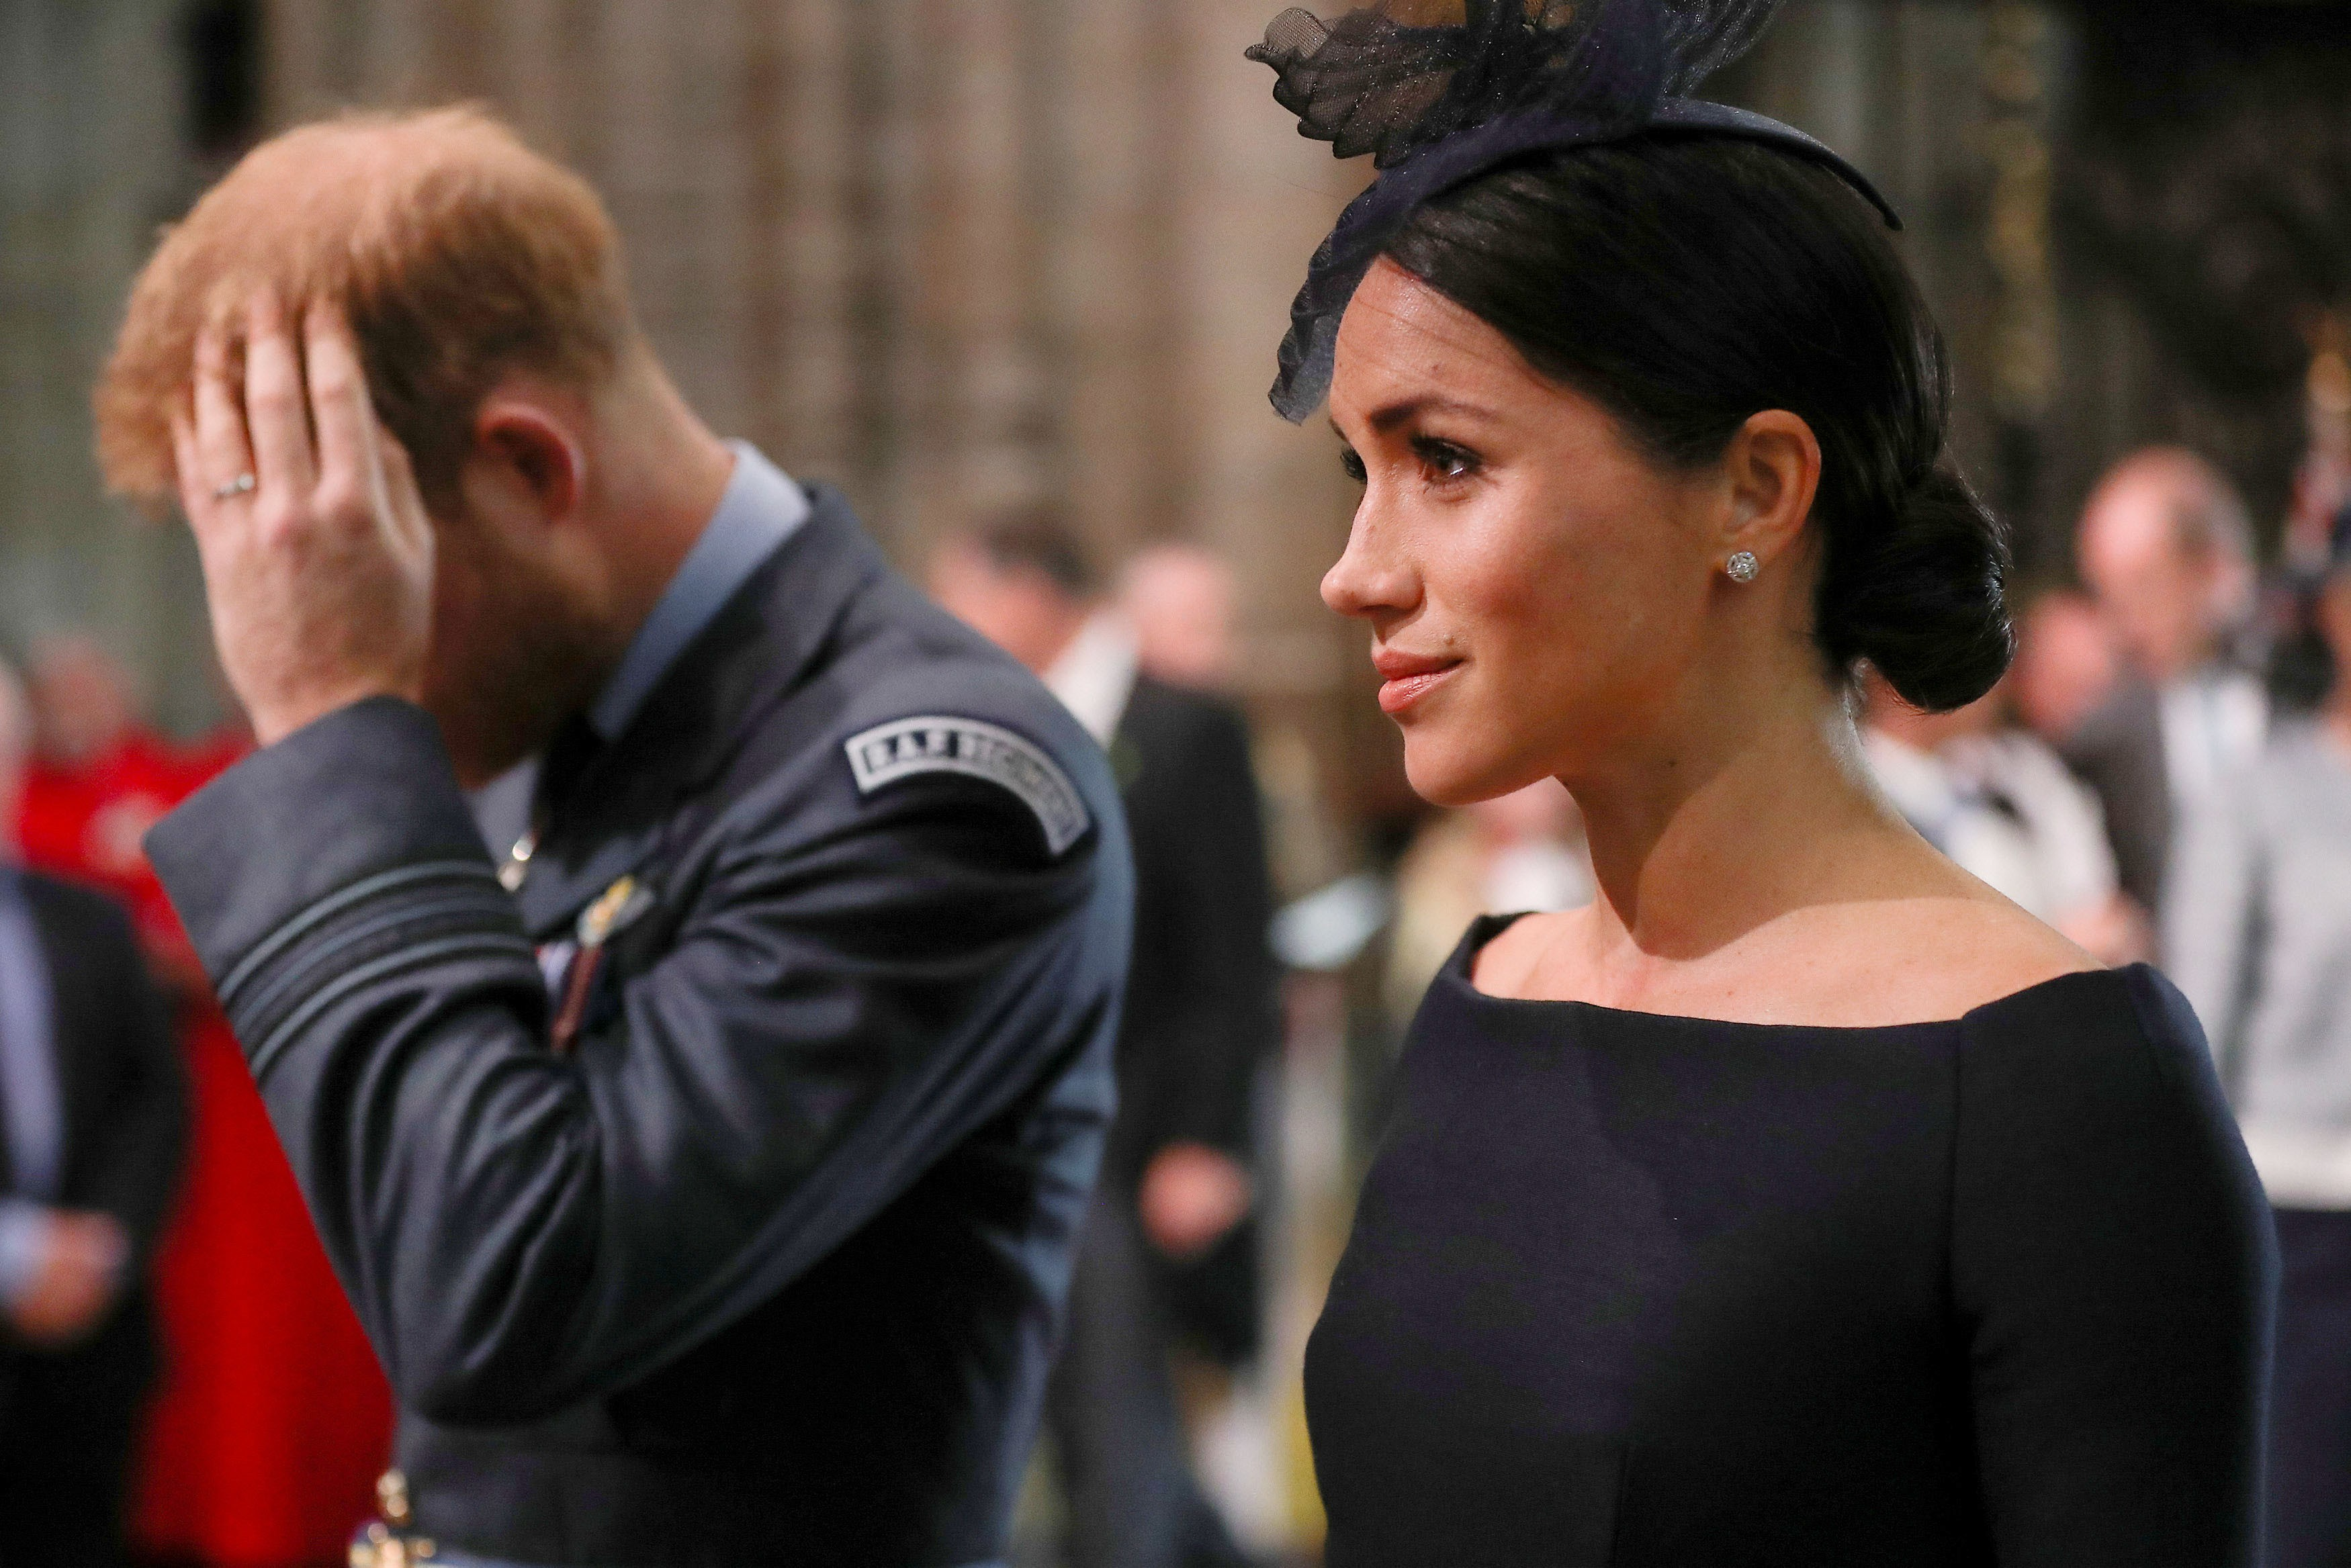 A ex-atriz e duquesa Meghan Markle na companhia do Príncipe Harry (Foto: Getty Images)